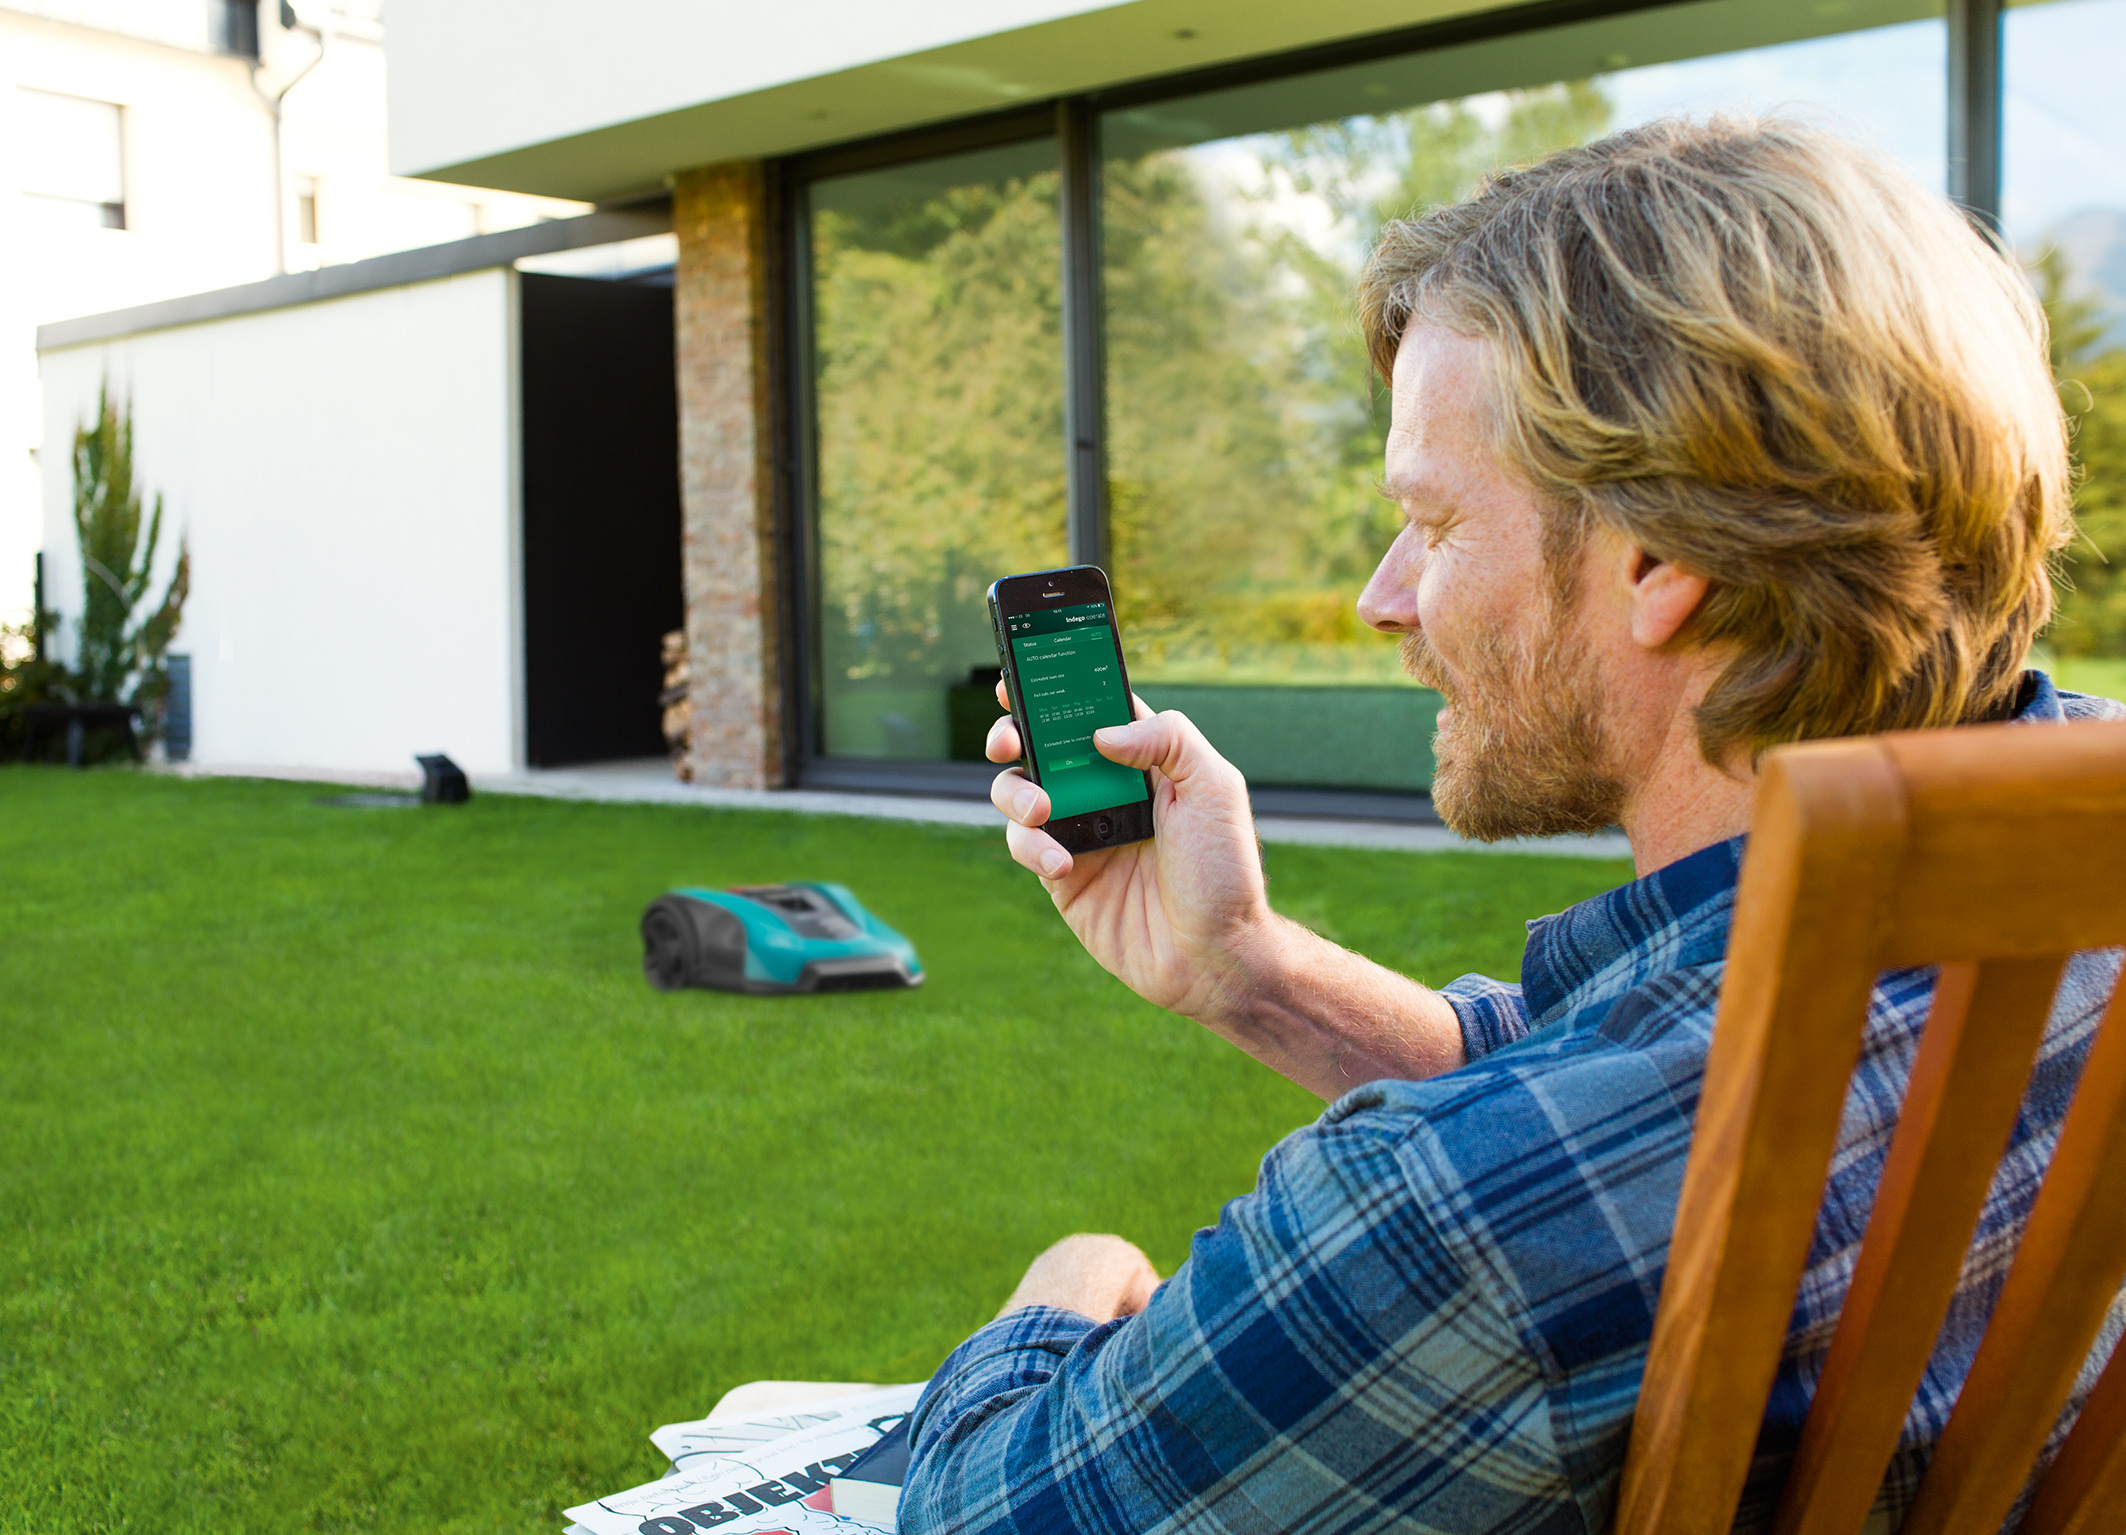 Autonomous lawn care and app control: The robotic lawnmower Indego 400 Connect